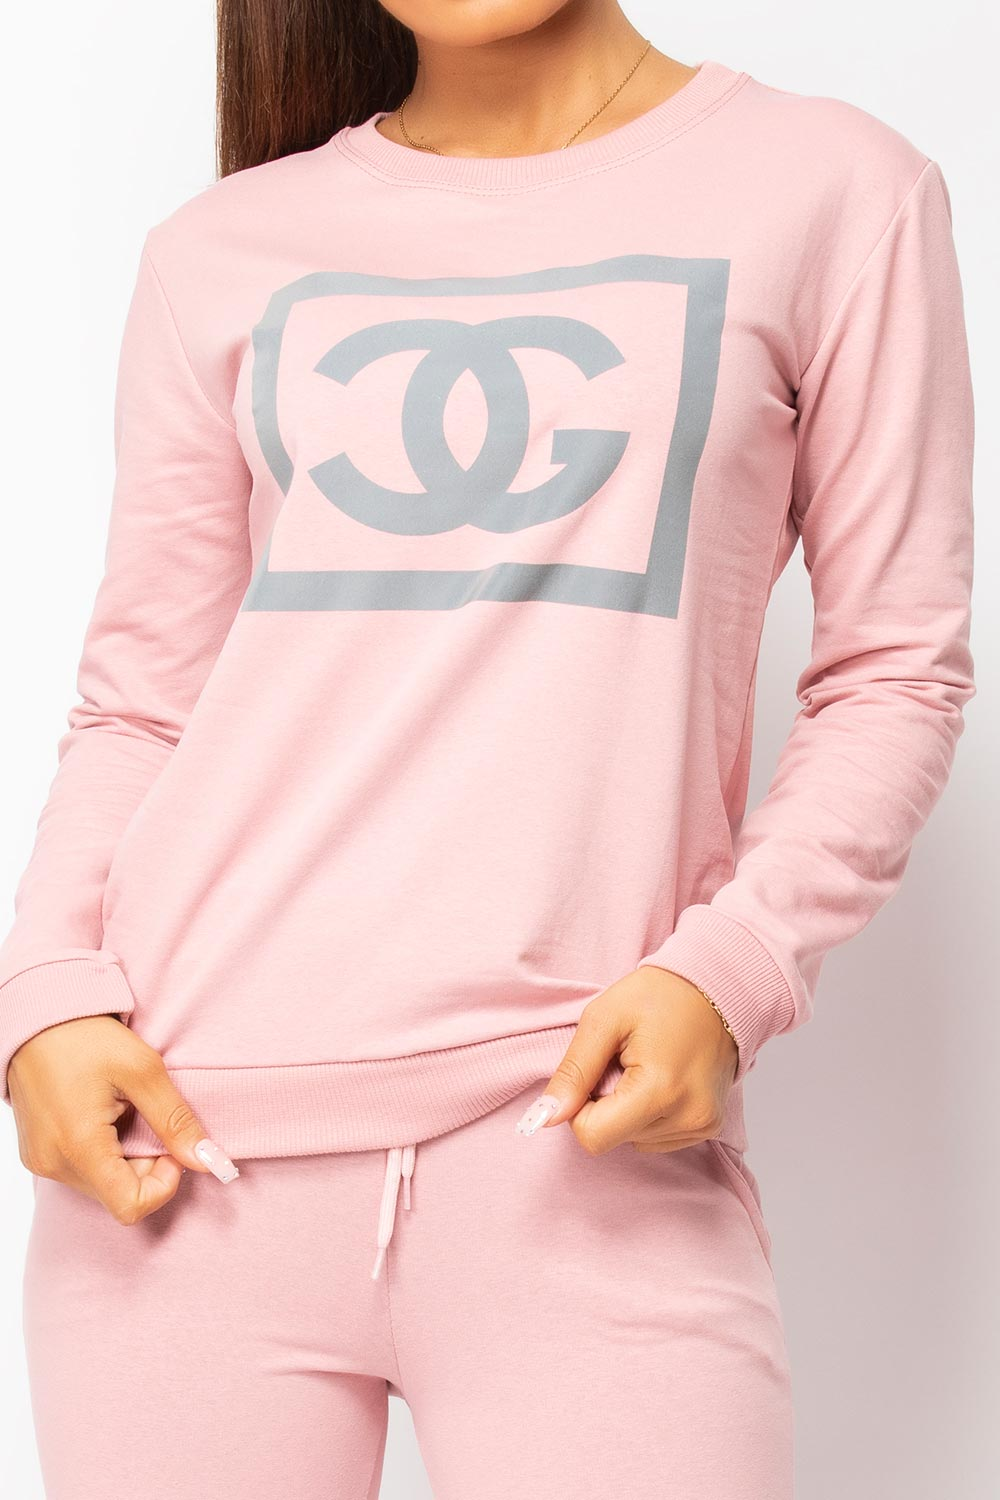 pink reflective slogan tracksuit womens